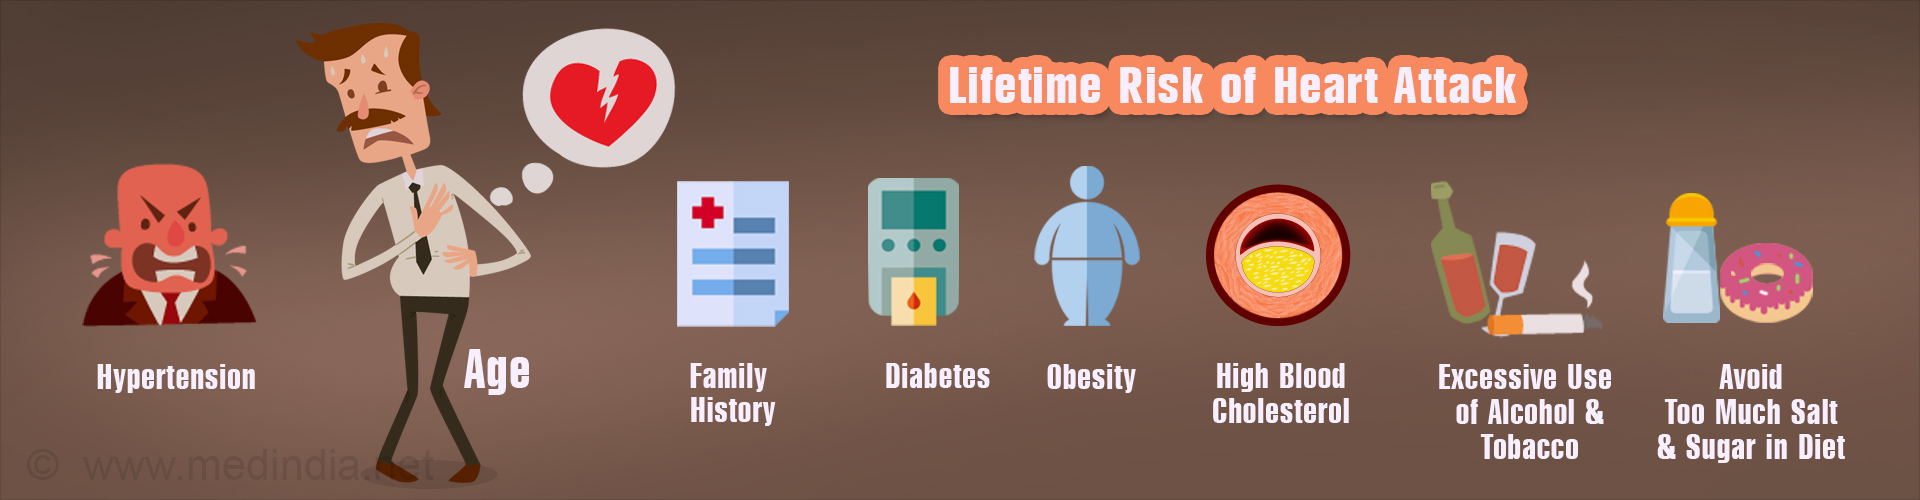 Calculate Your Lifetime Risk of Heart Attack